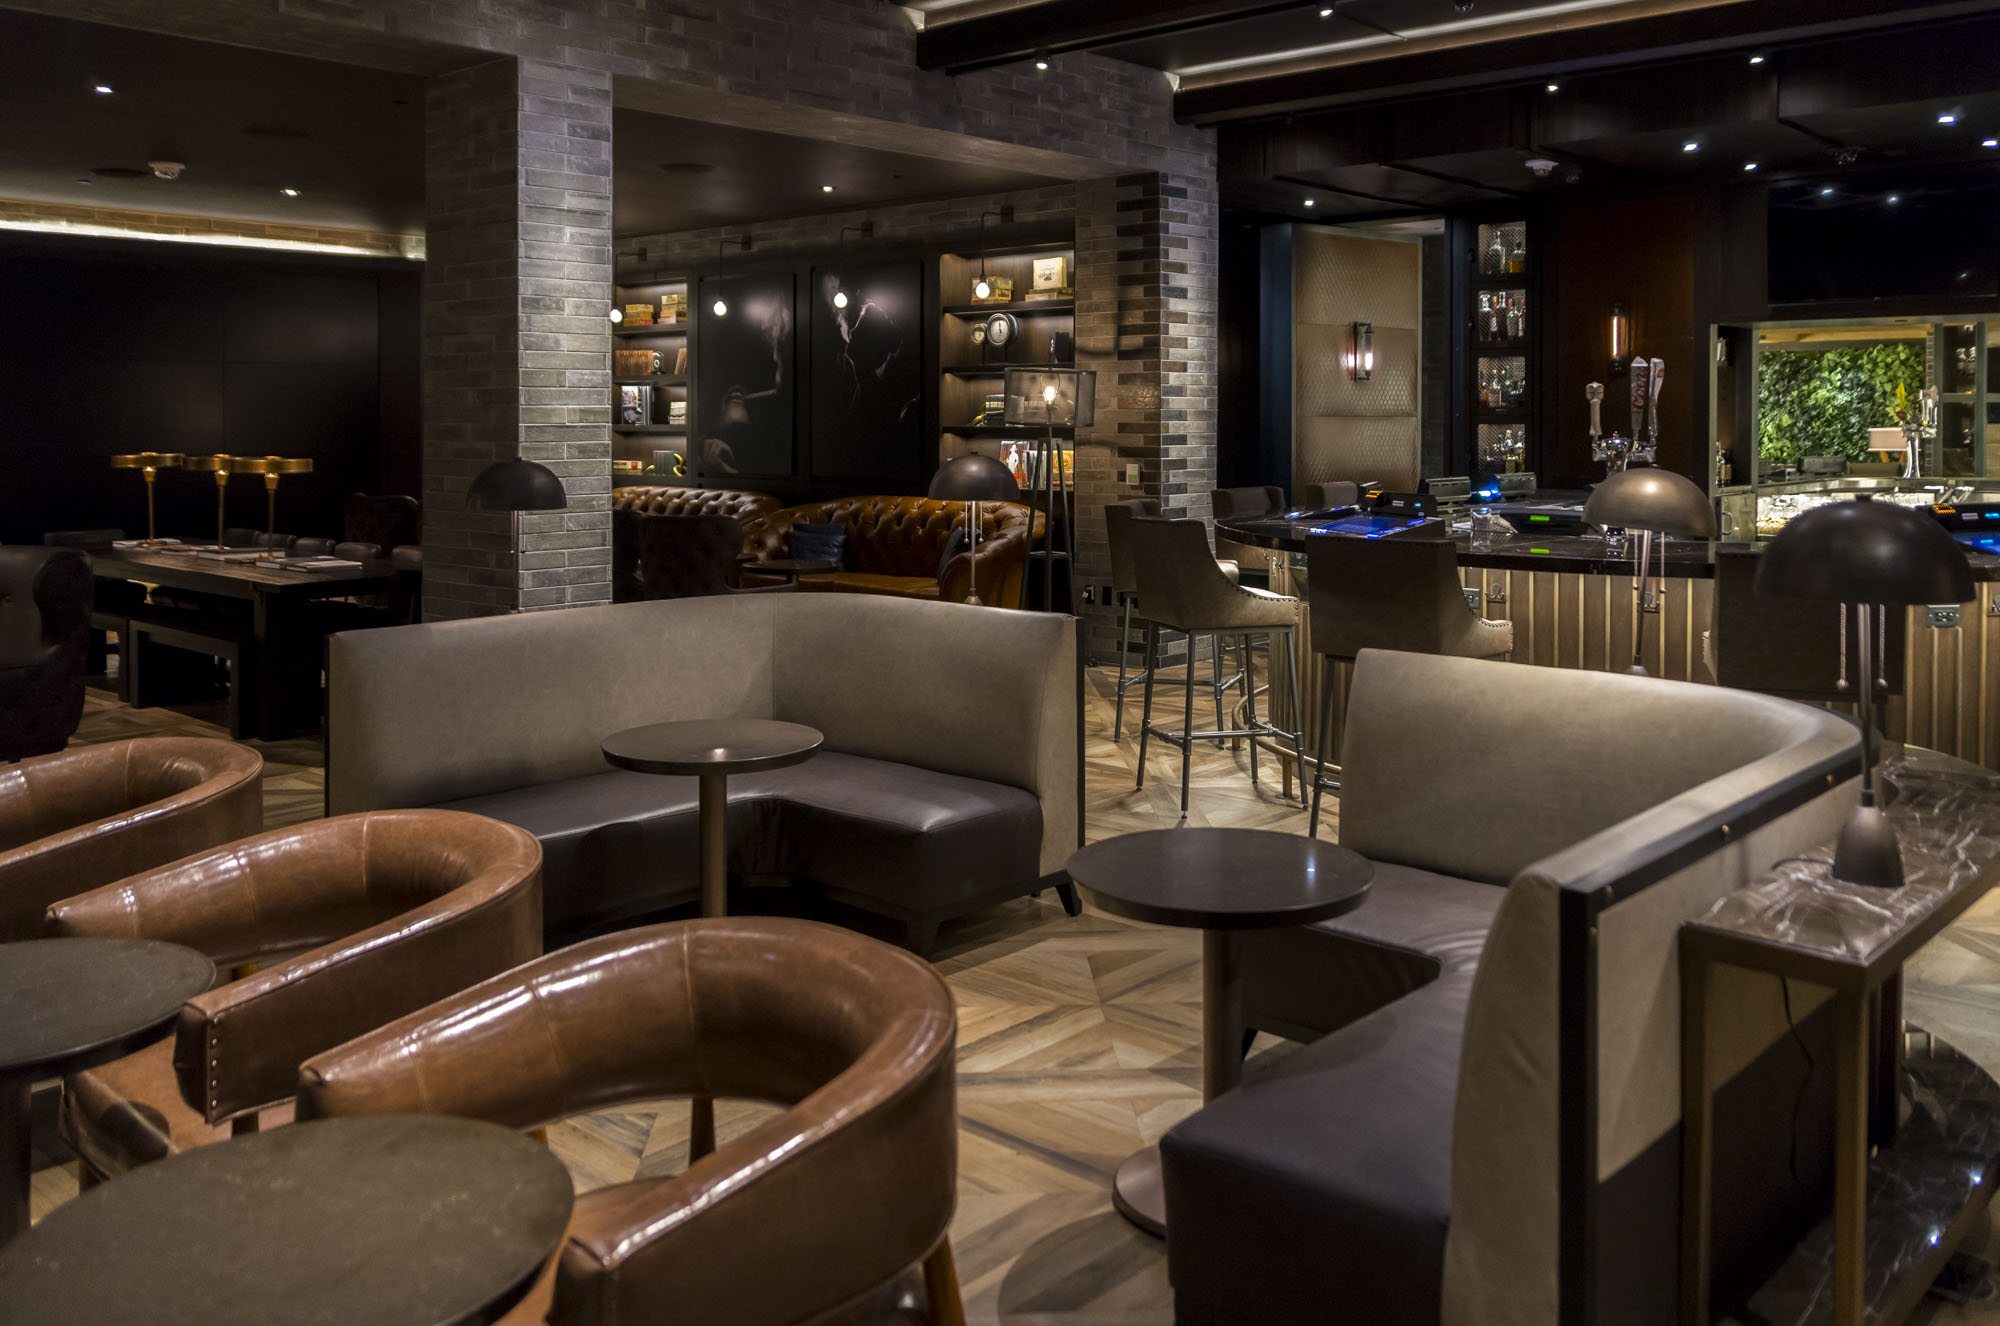 6bfb6c318ad7 Where to find the best lounges and bars in Las Vegas - Eater Vegas